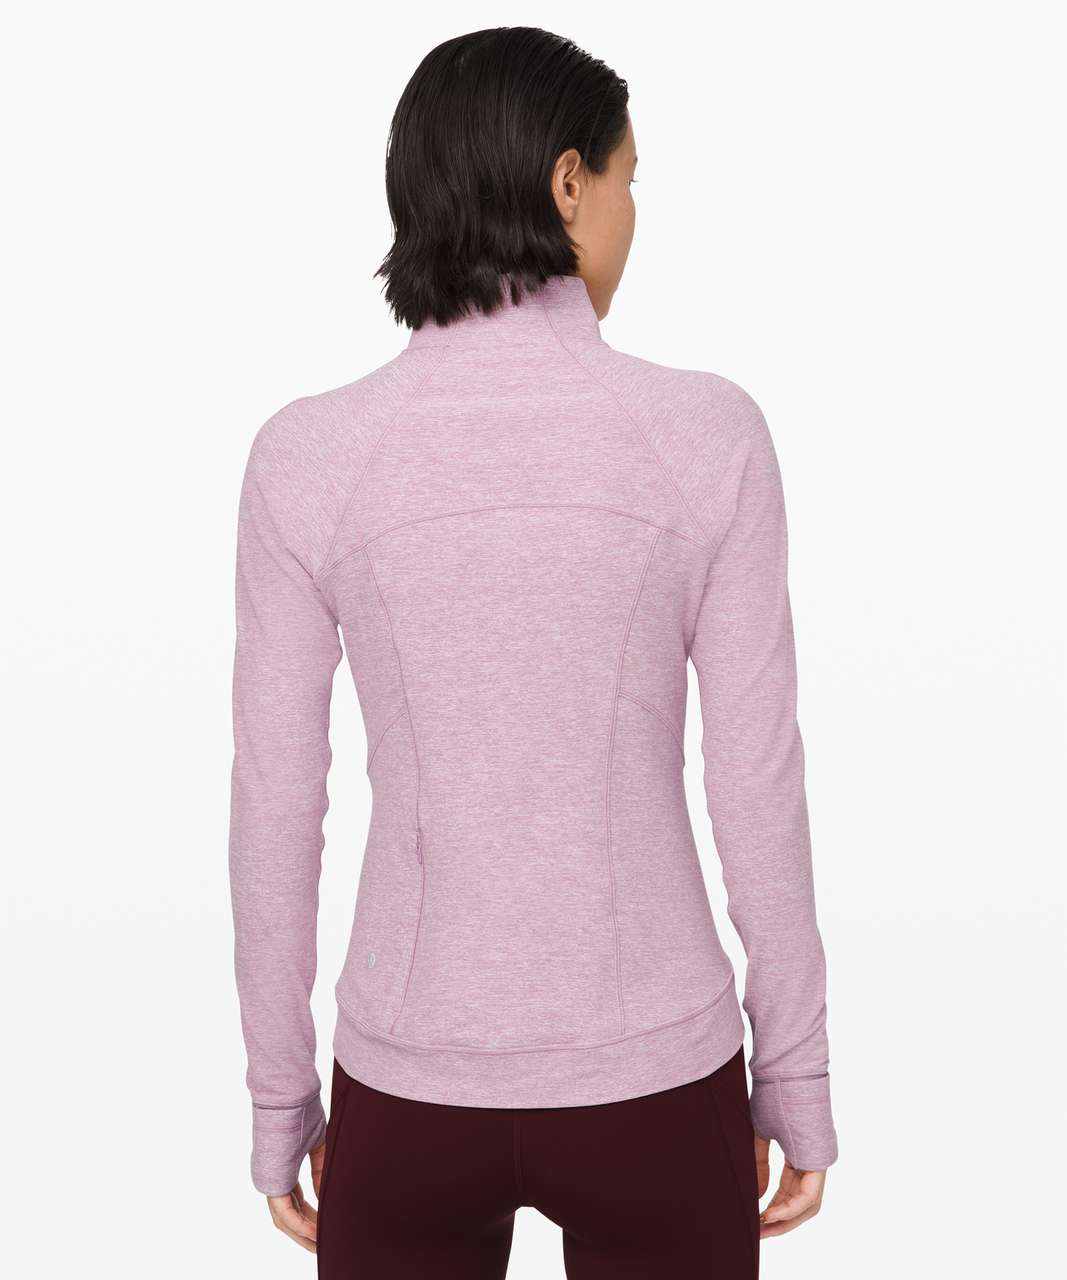 Lululemon Outrun the Elements 1/2 Zip - Heathered Pink Taupe